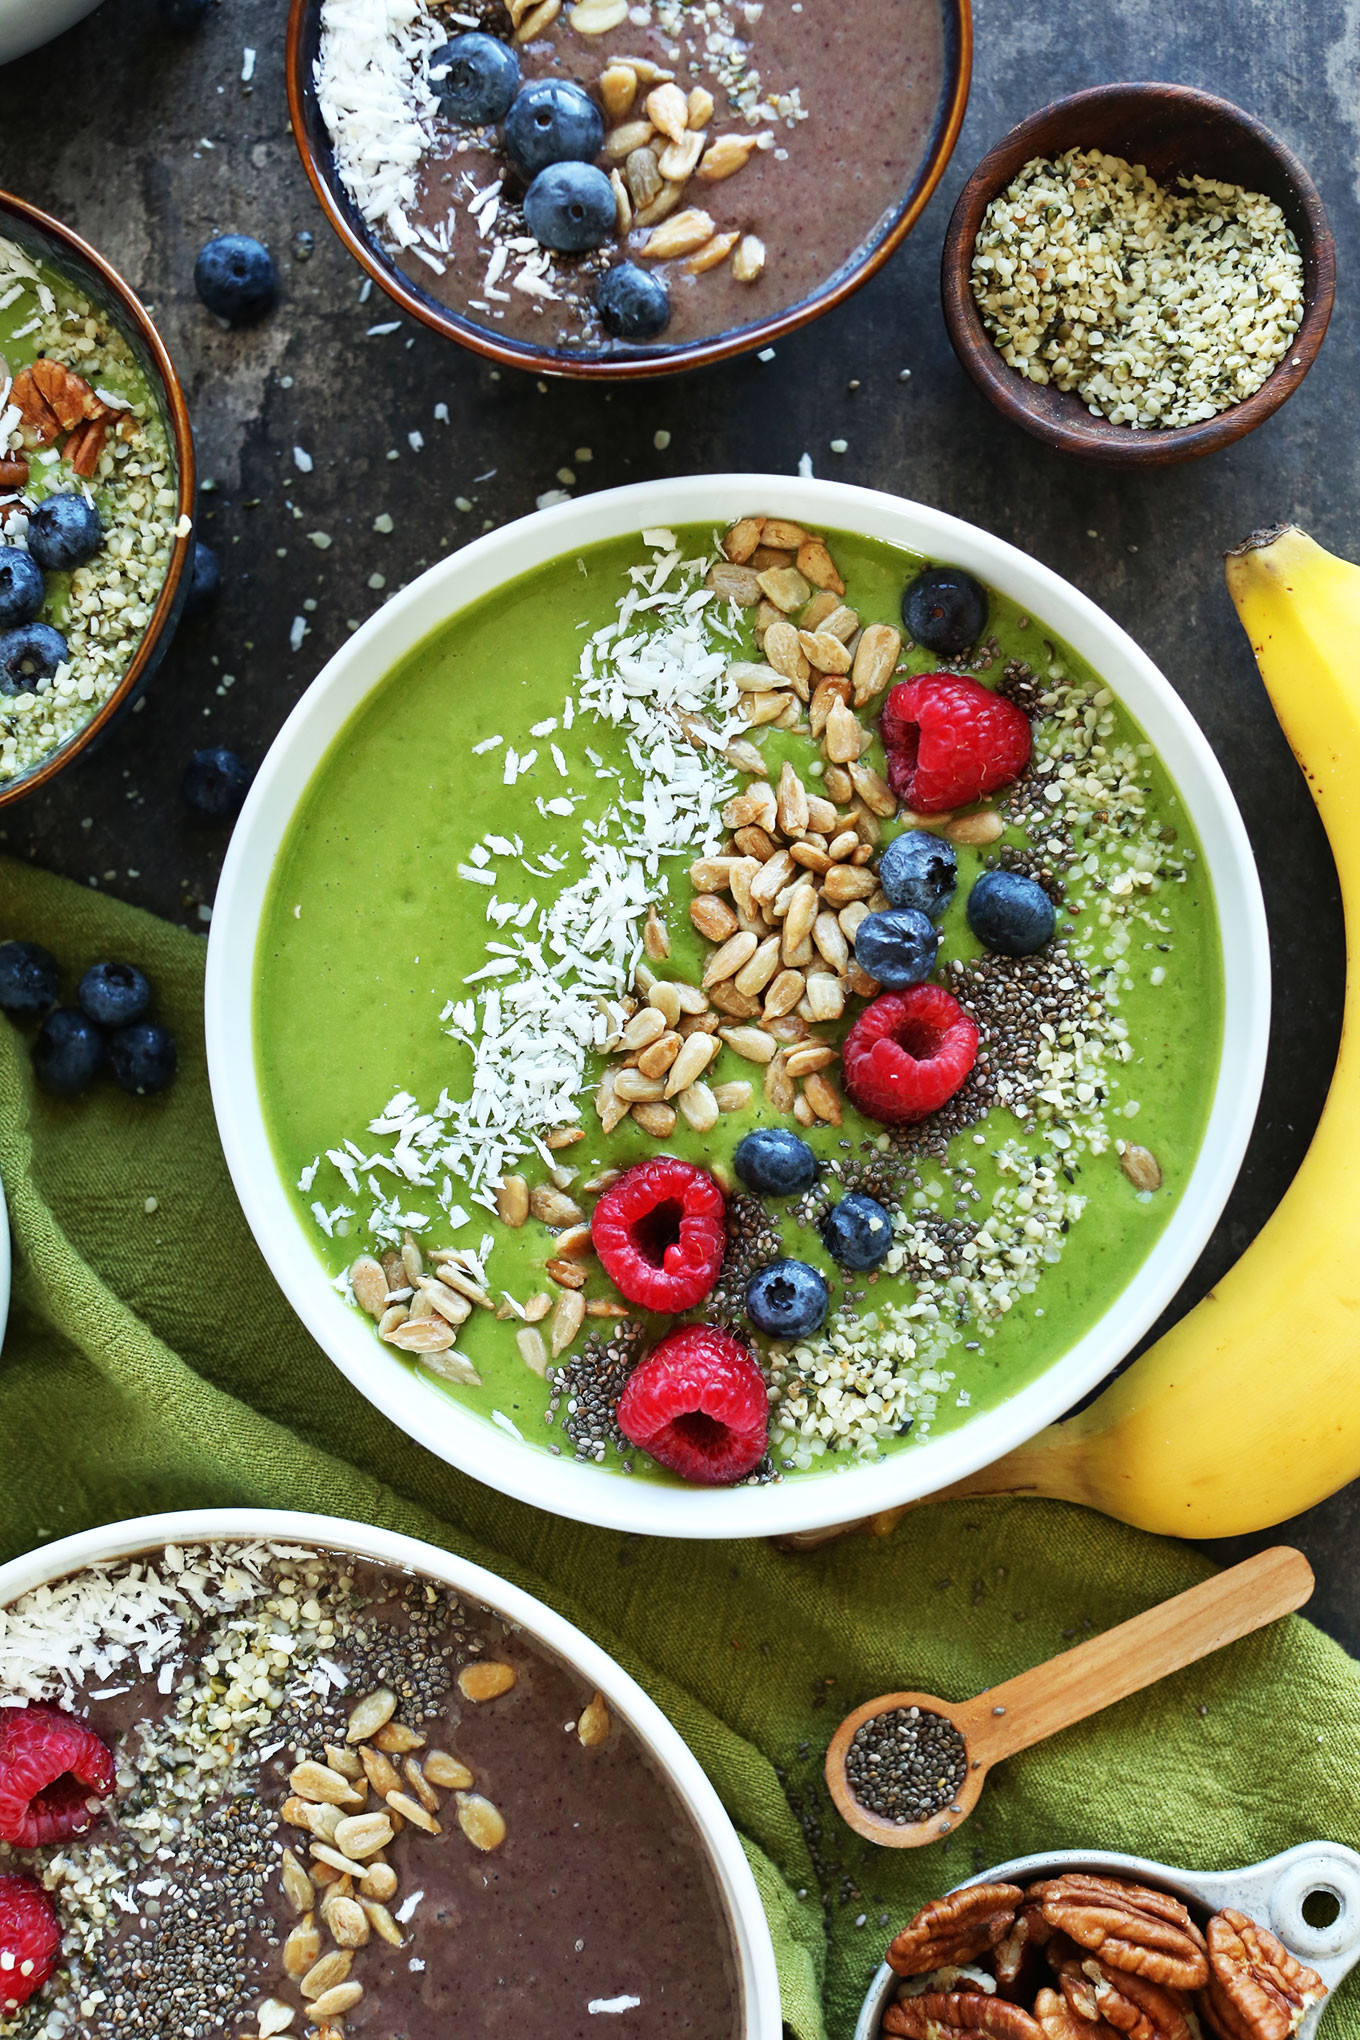 Healthy Smoothies For Dinner  15 Superfood Bowl Recipes Fit Foo Finds